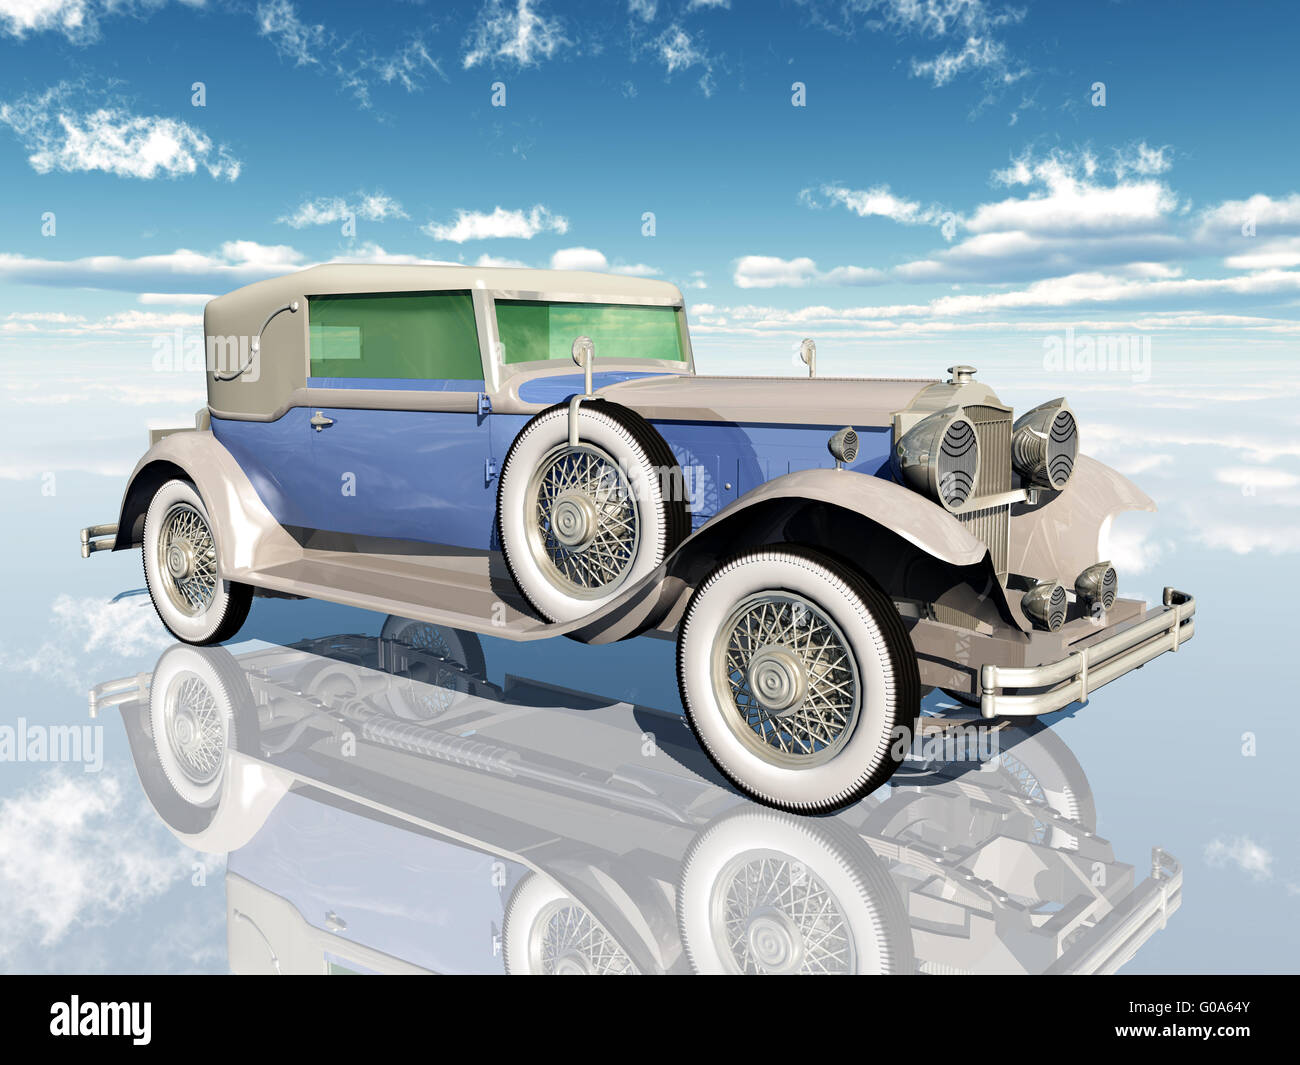 American Car from the 1930s - Stock Image